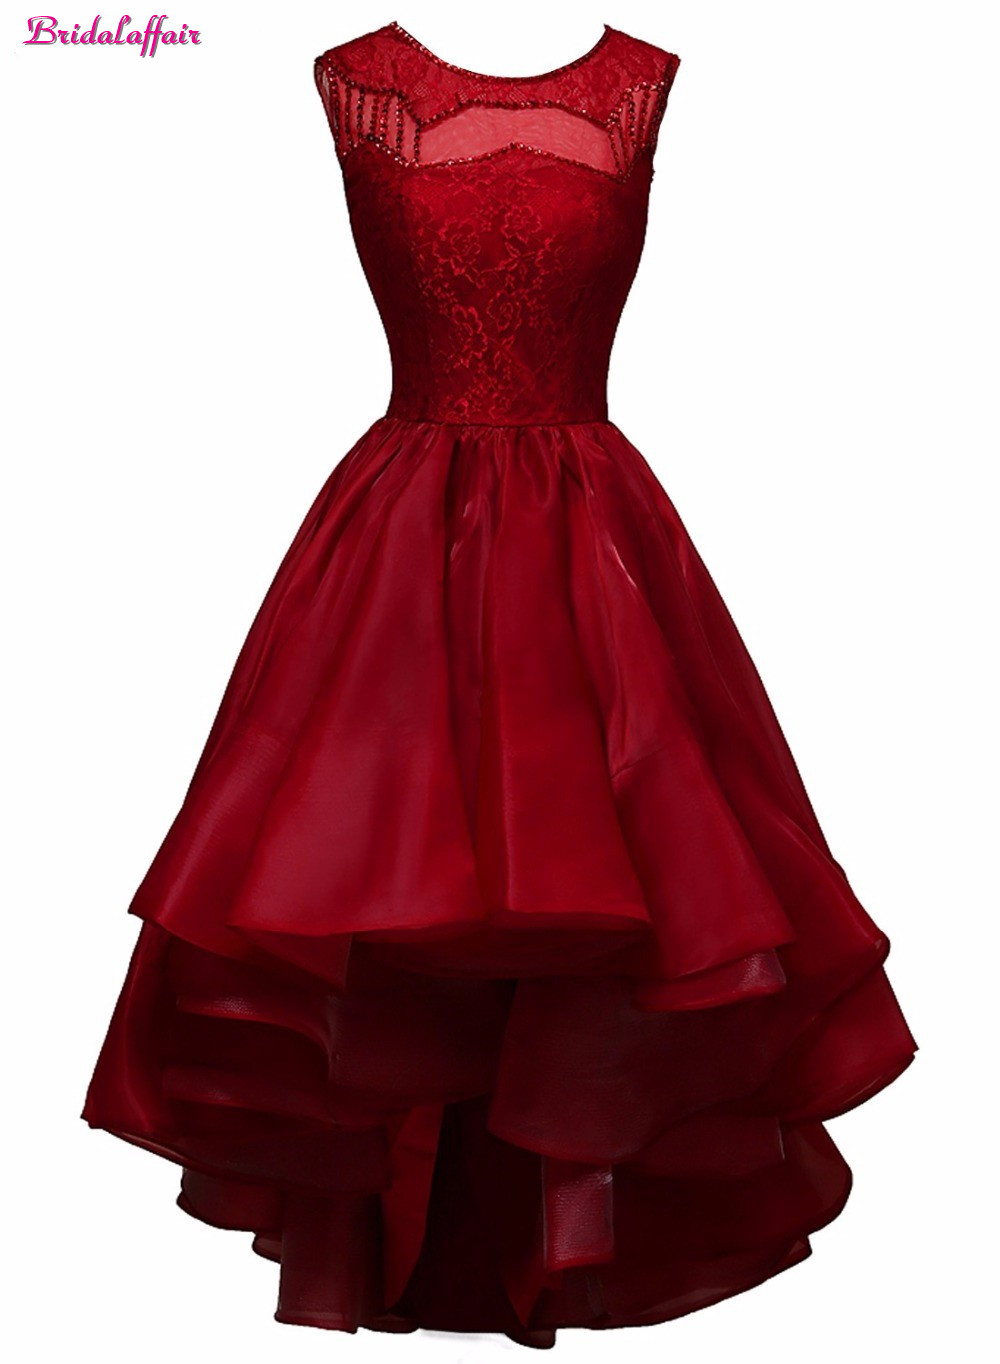 Bridalaffair Real Photo Deep Red Satin O Neck Lace Short   Prom     Dresses   2017 Sleeveless Zipper Back Party   Prom   Gown Robe de soiree